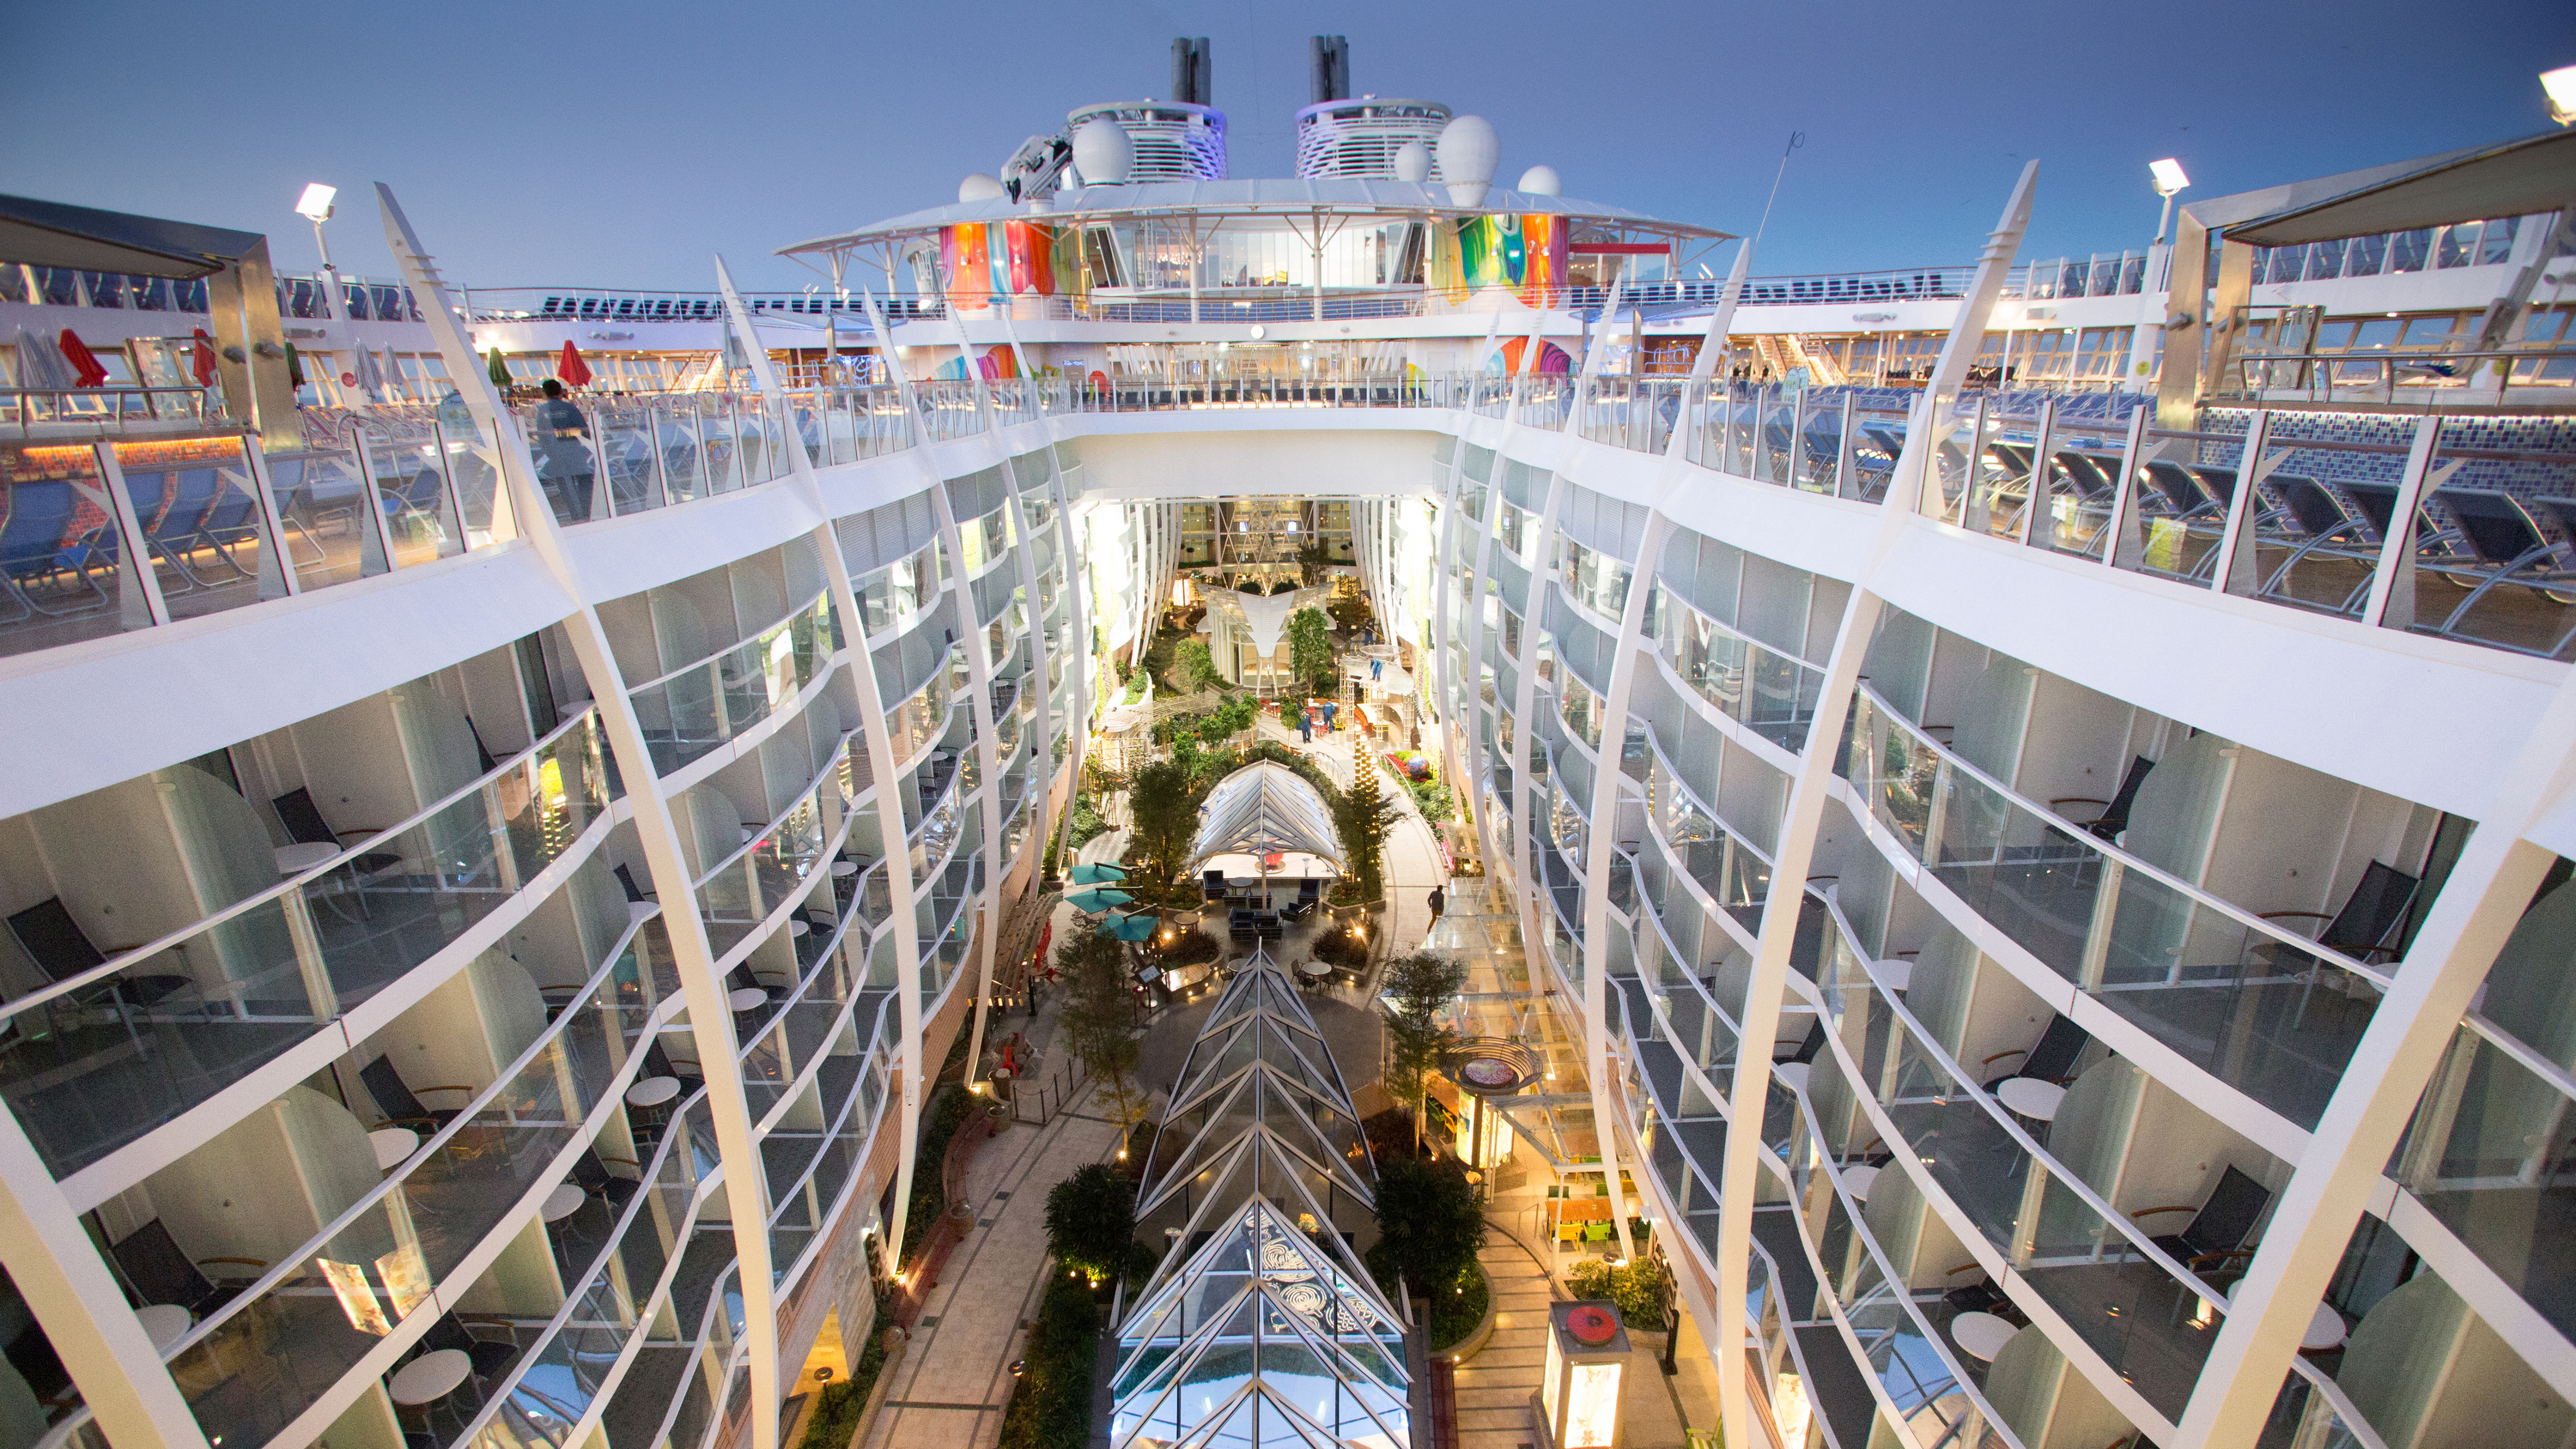 15 biggest cruise ships in the world | CNN Travel